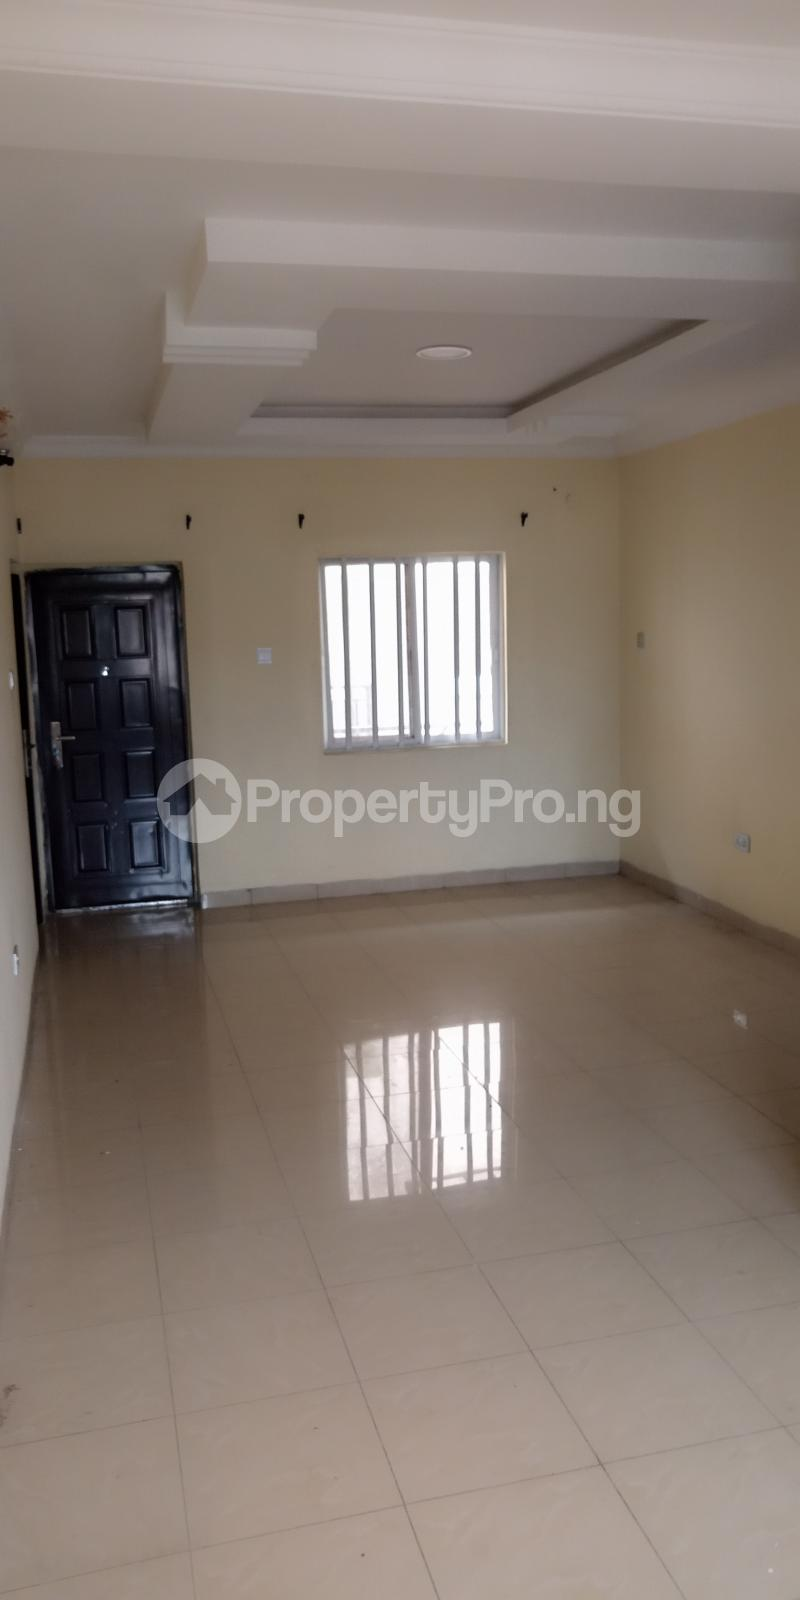 3 bedroom Flat / Apartment for rent Alagomeji Alagomeji Yaba Lagos - 5